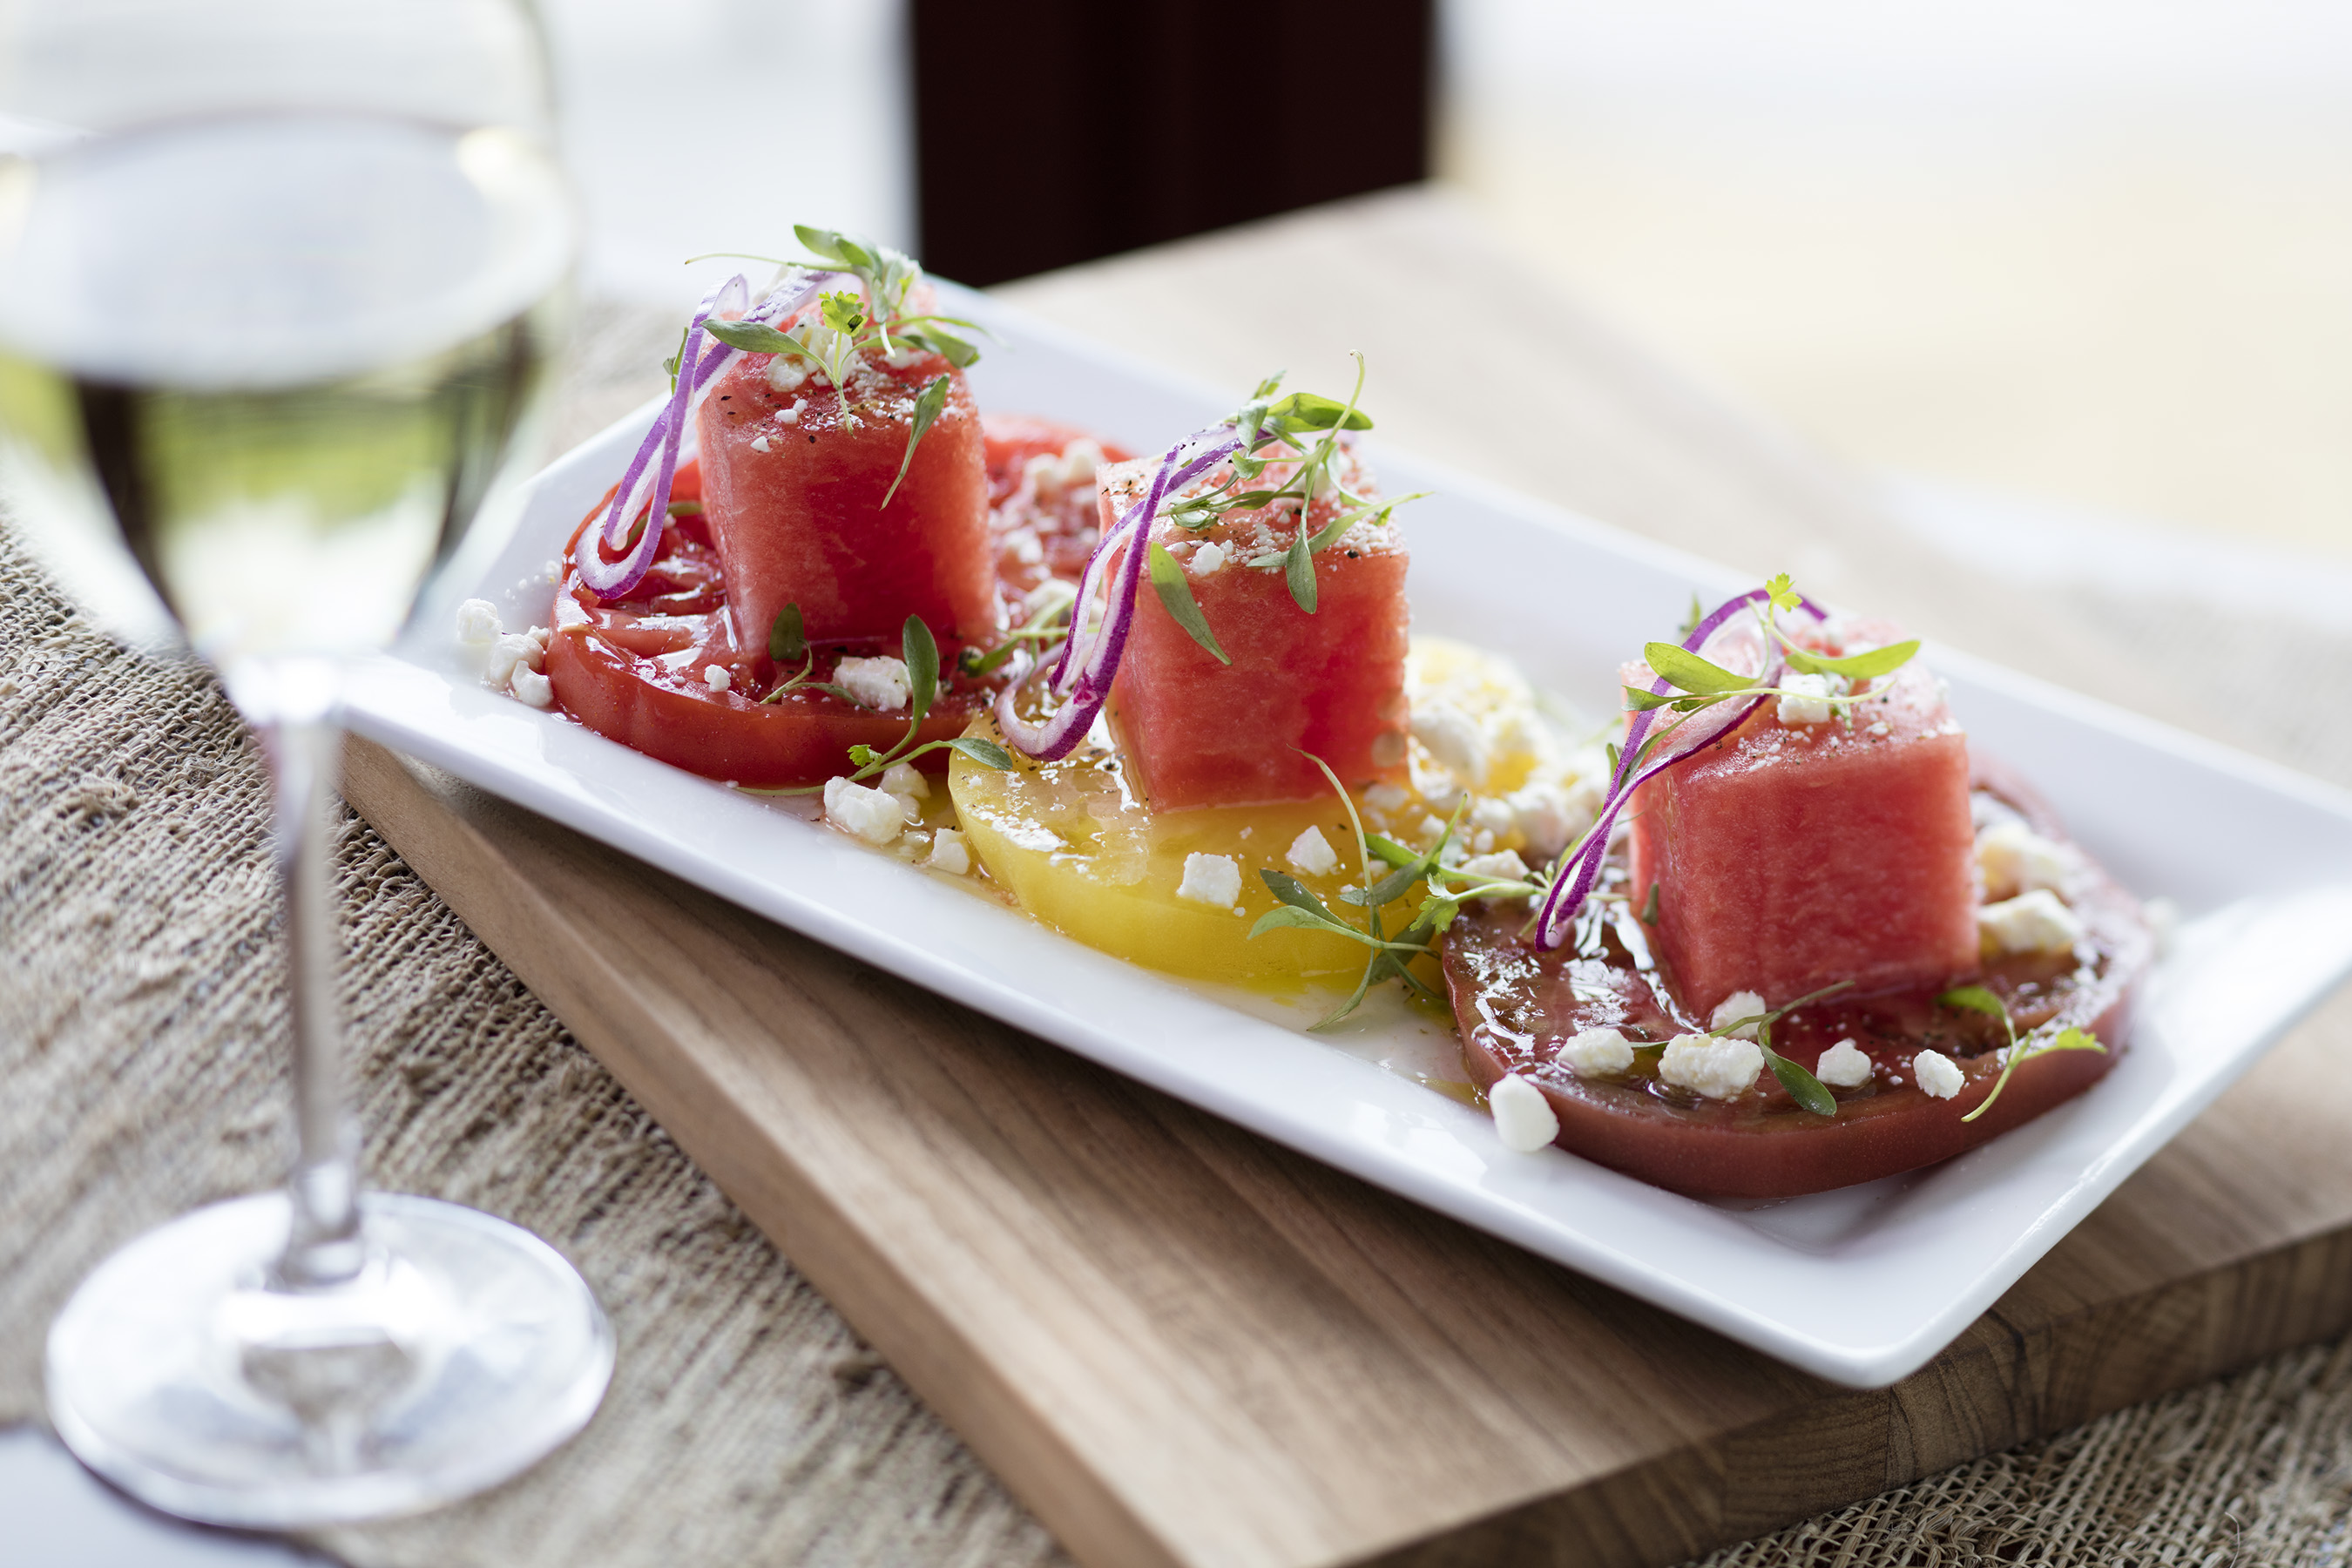 Watermelon & Heirloom Tomato Salad: This color-rich dish combines the best of summer, with sweet watermelon cubes resting on bright heirloom tomatoes, opposite shaved red onion, creamy feta and lemon vinaigrette.